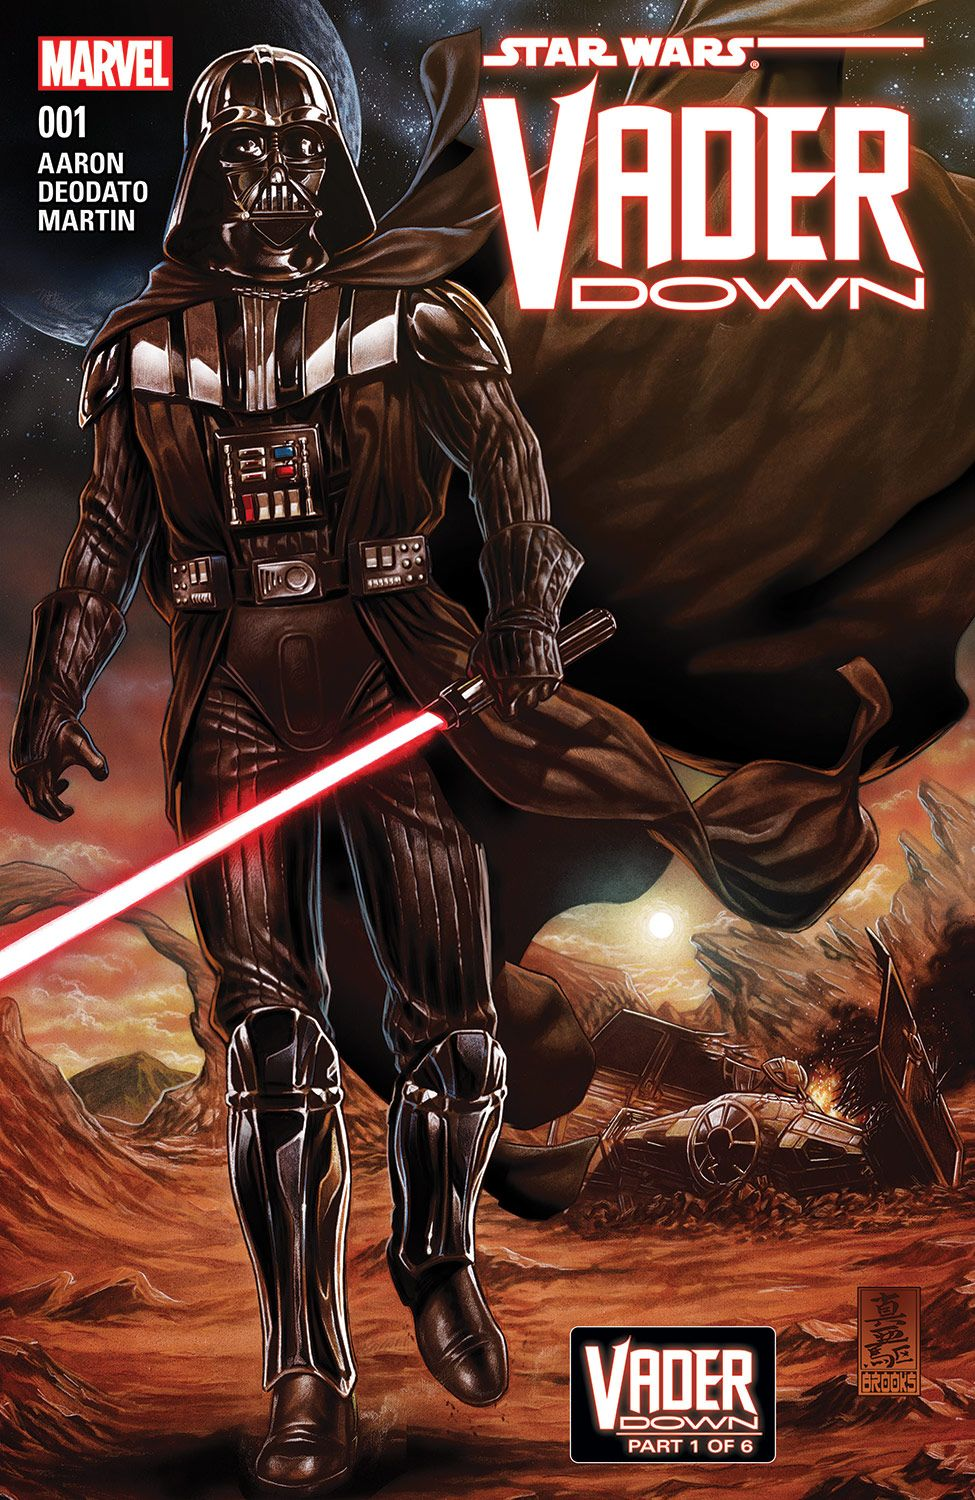 Star Wars: Vader Down #1 (Marvel)